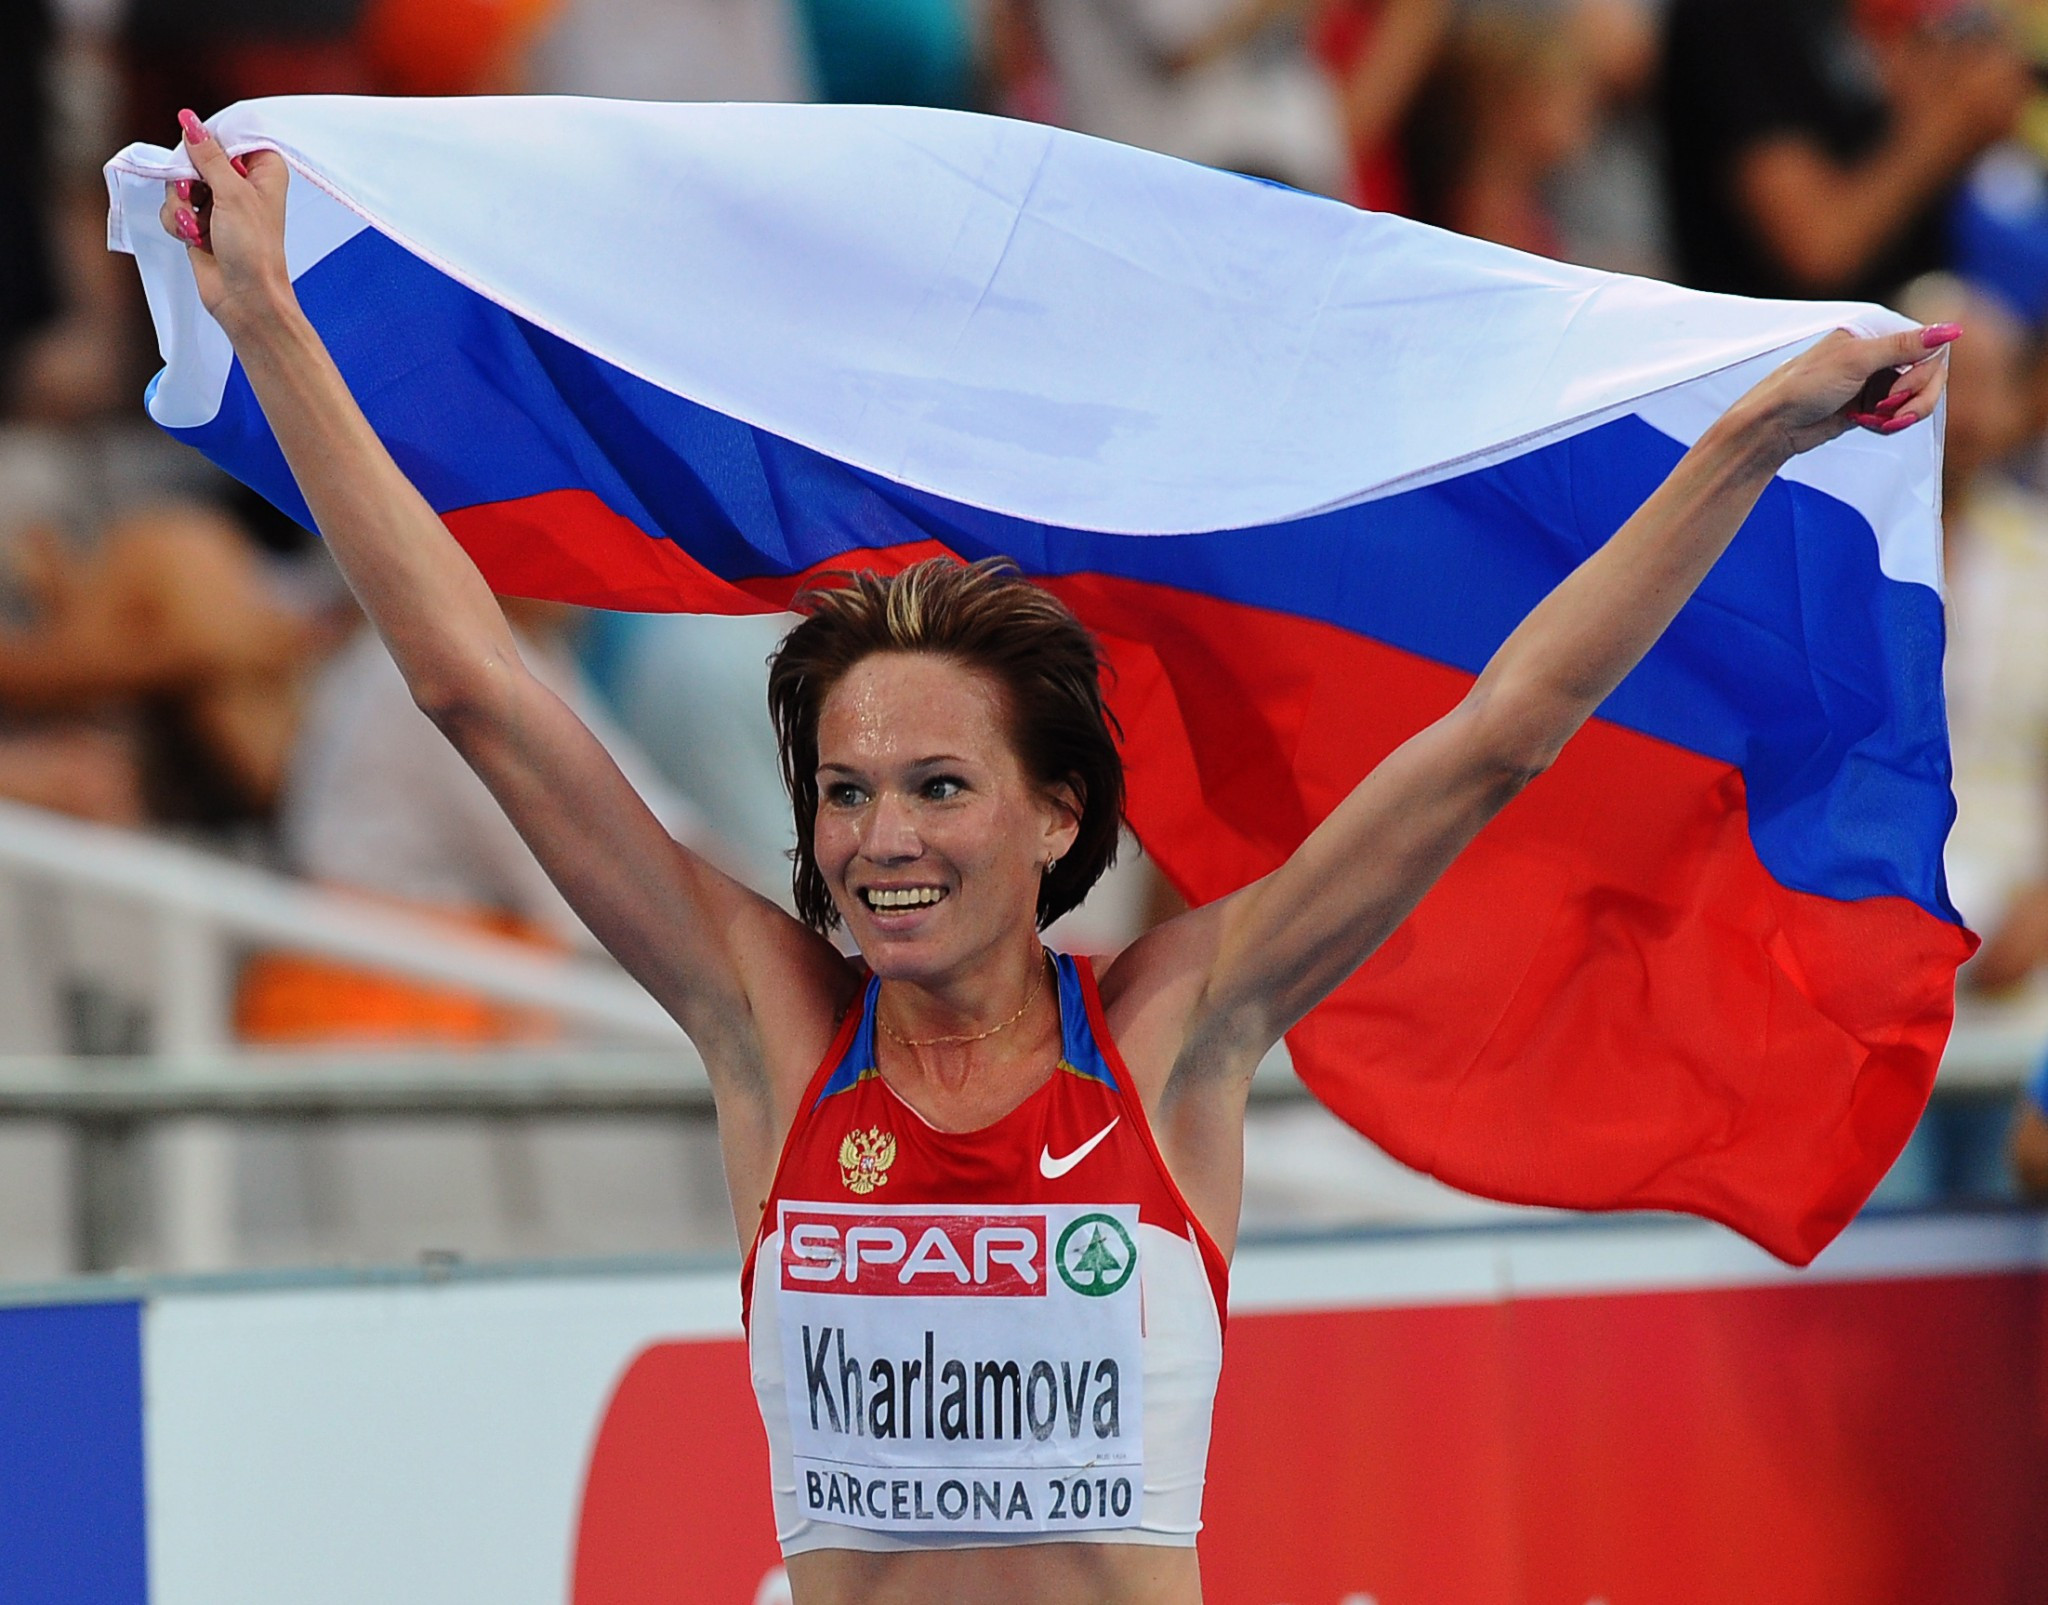 Lyubov Kharlamova has been stripped of the silver medal she won at the 2010 European Championships in the 3,000 metres steeplechase ©Getty Images